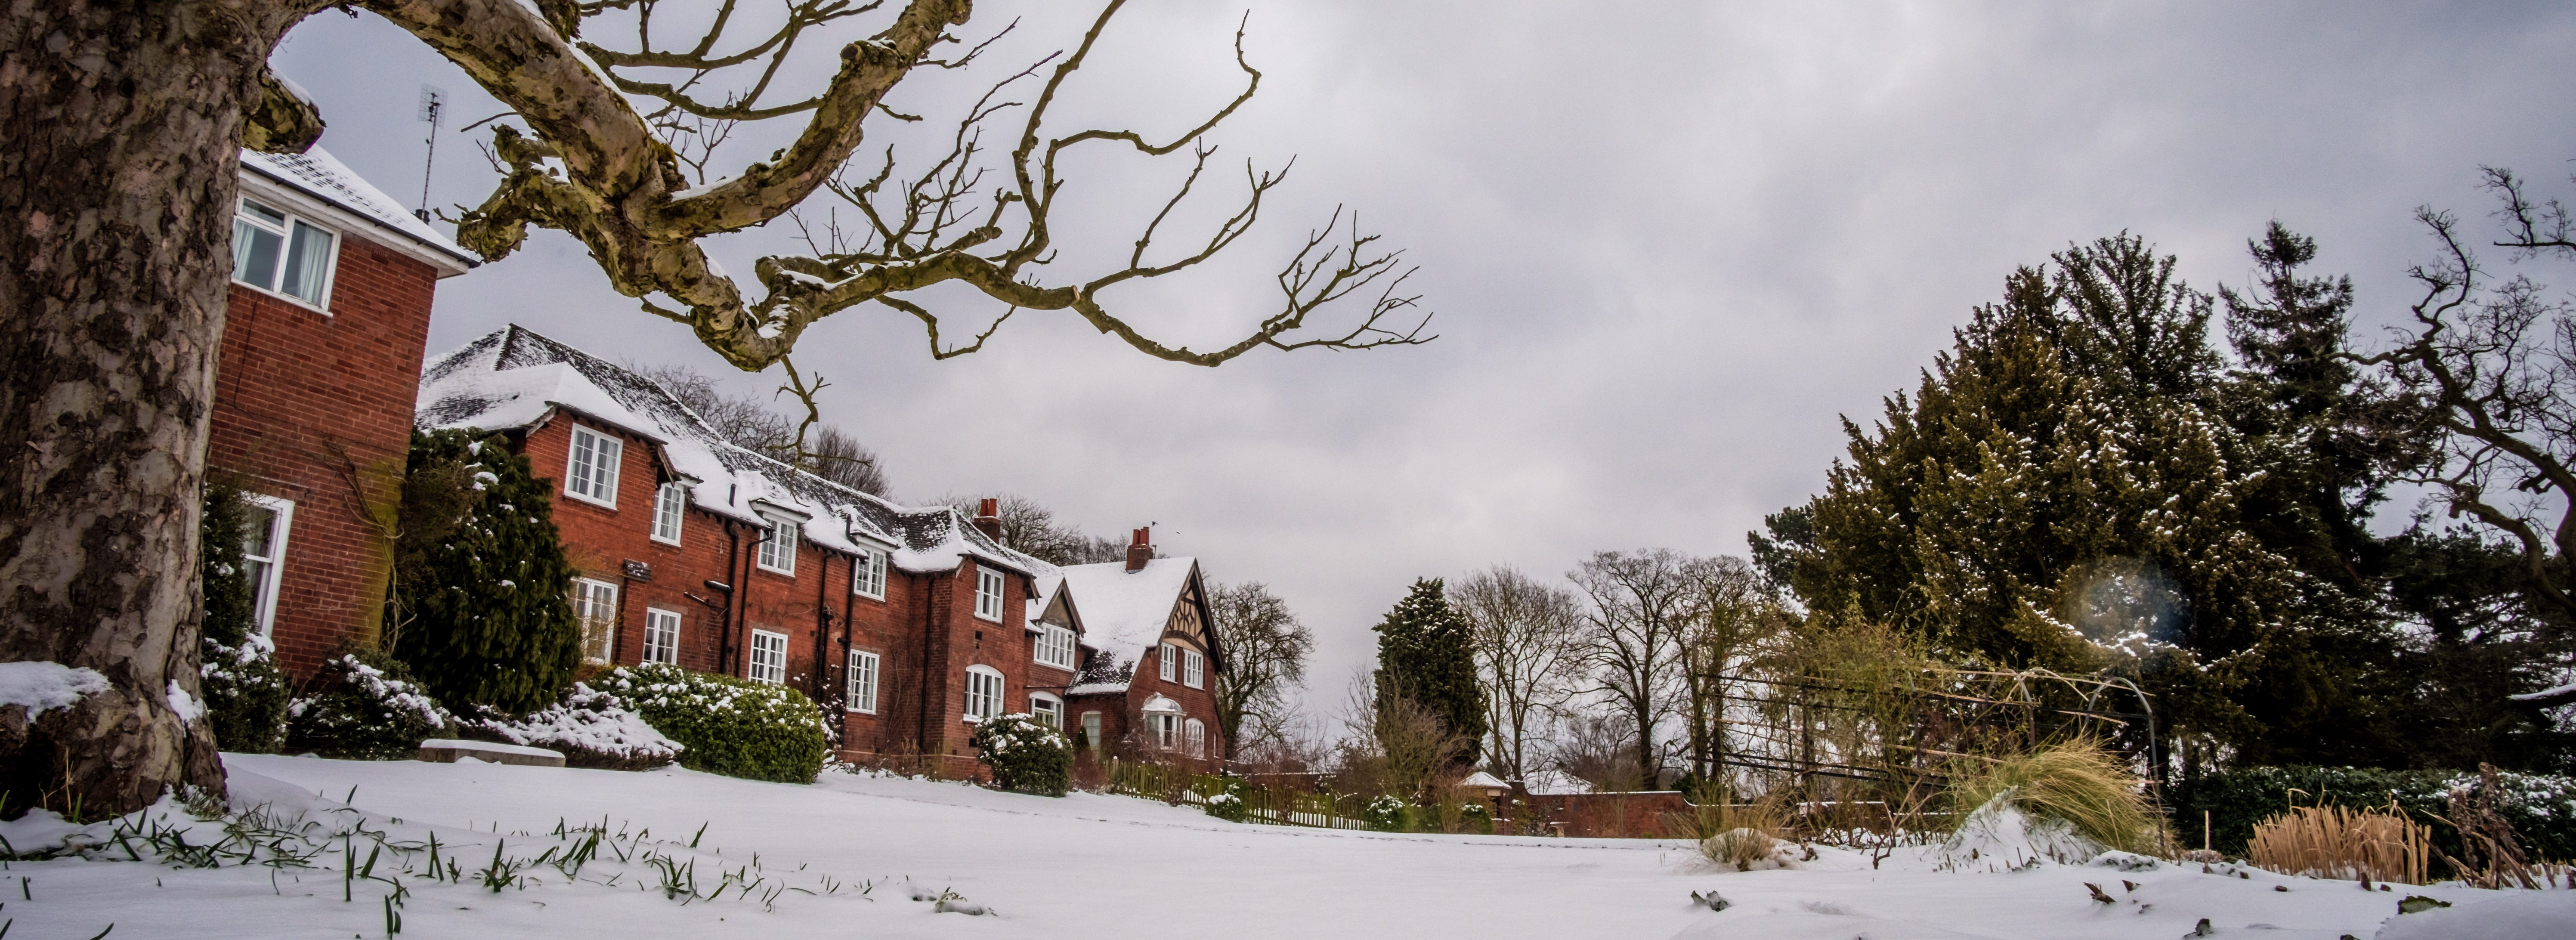 Woodbrooke (Holland House) in the Snow